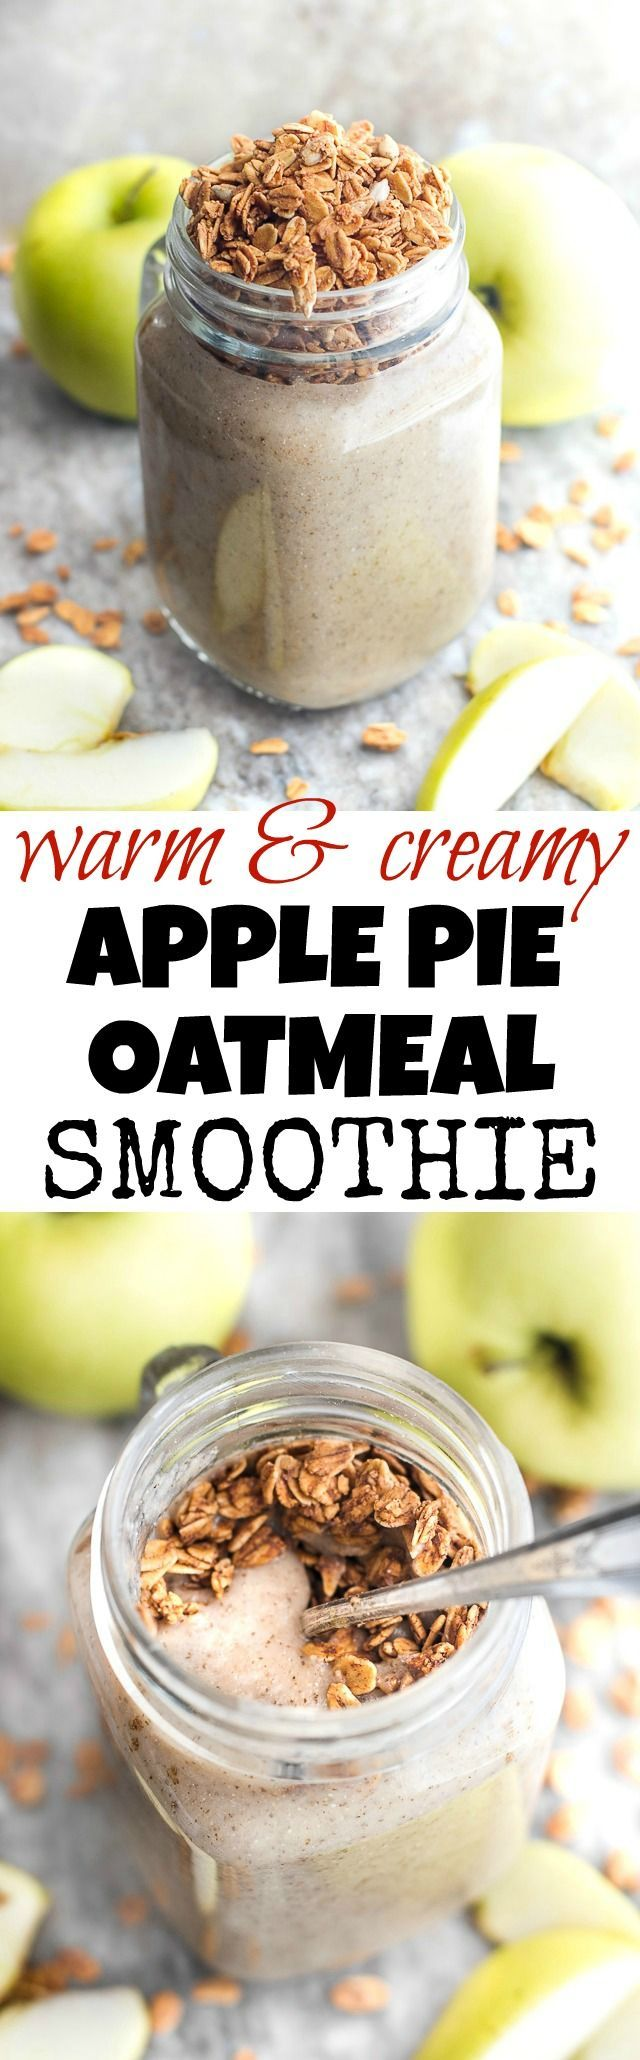 Enjoy the taste of apple pie for breakfast with this healthy apple pie oatmeal smoothie! Warmed up on the stove after blending, it makes a delicious and comforting breakfast or snack {vegan, gluten-free, refined-sugar-free} | runningwithspoons.com